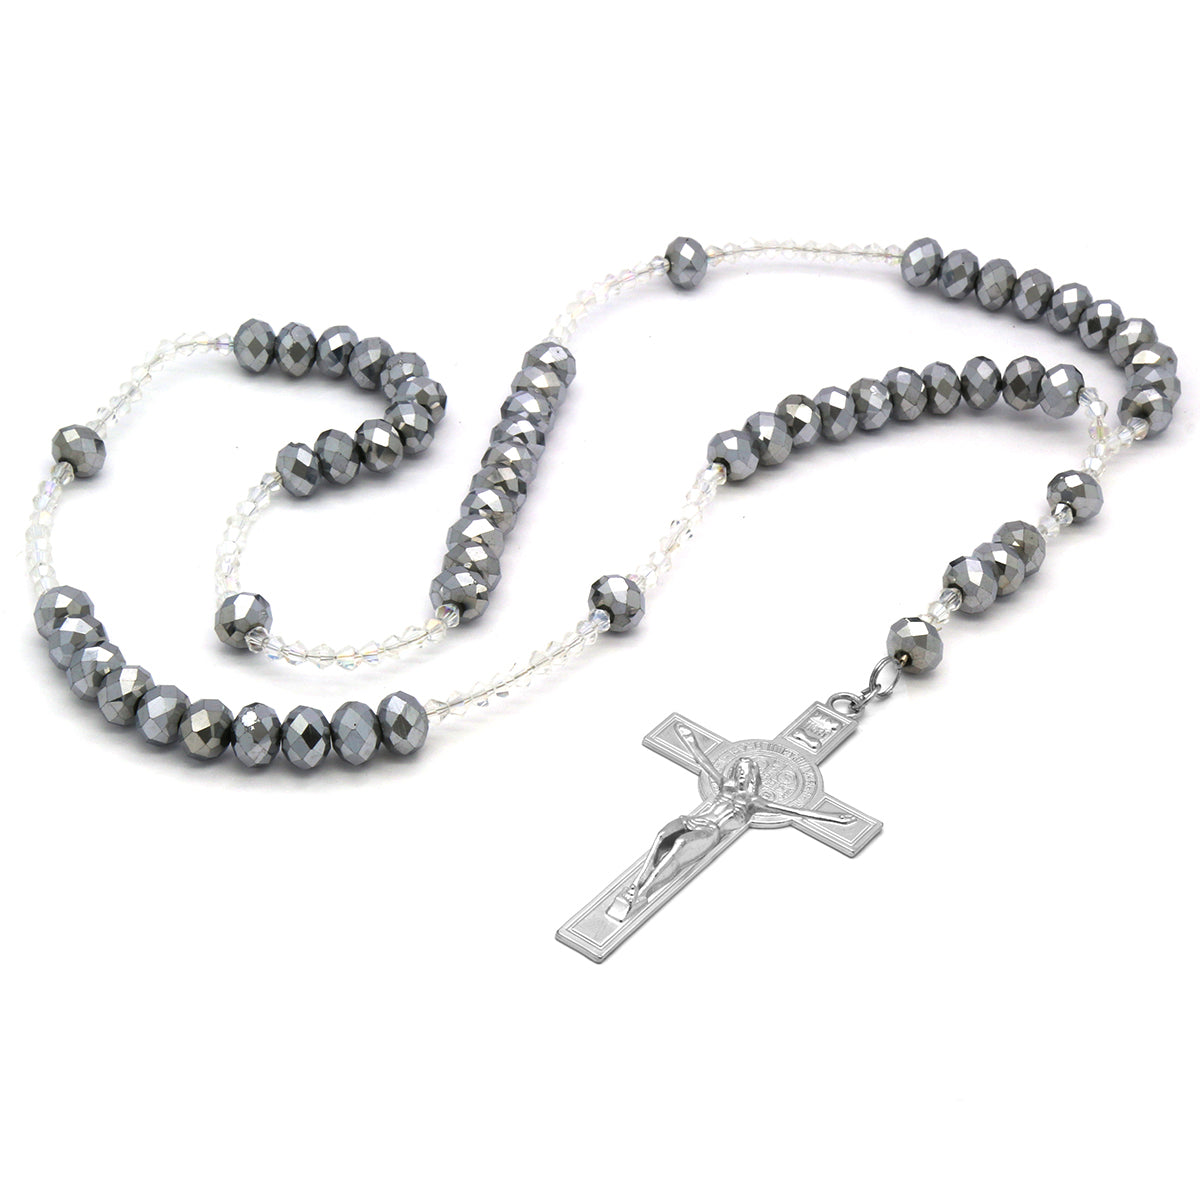 Silver/Clear Crystal Line Rosary With Cross Pendant